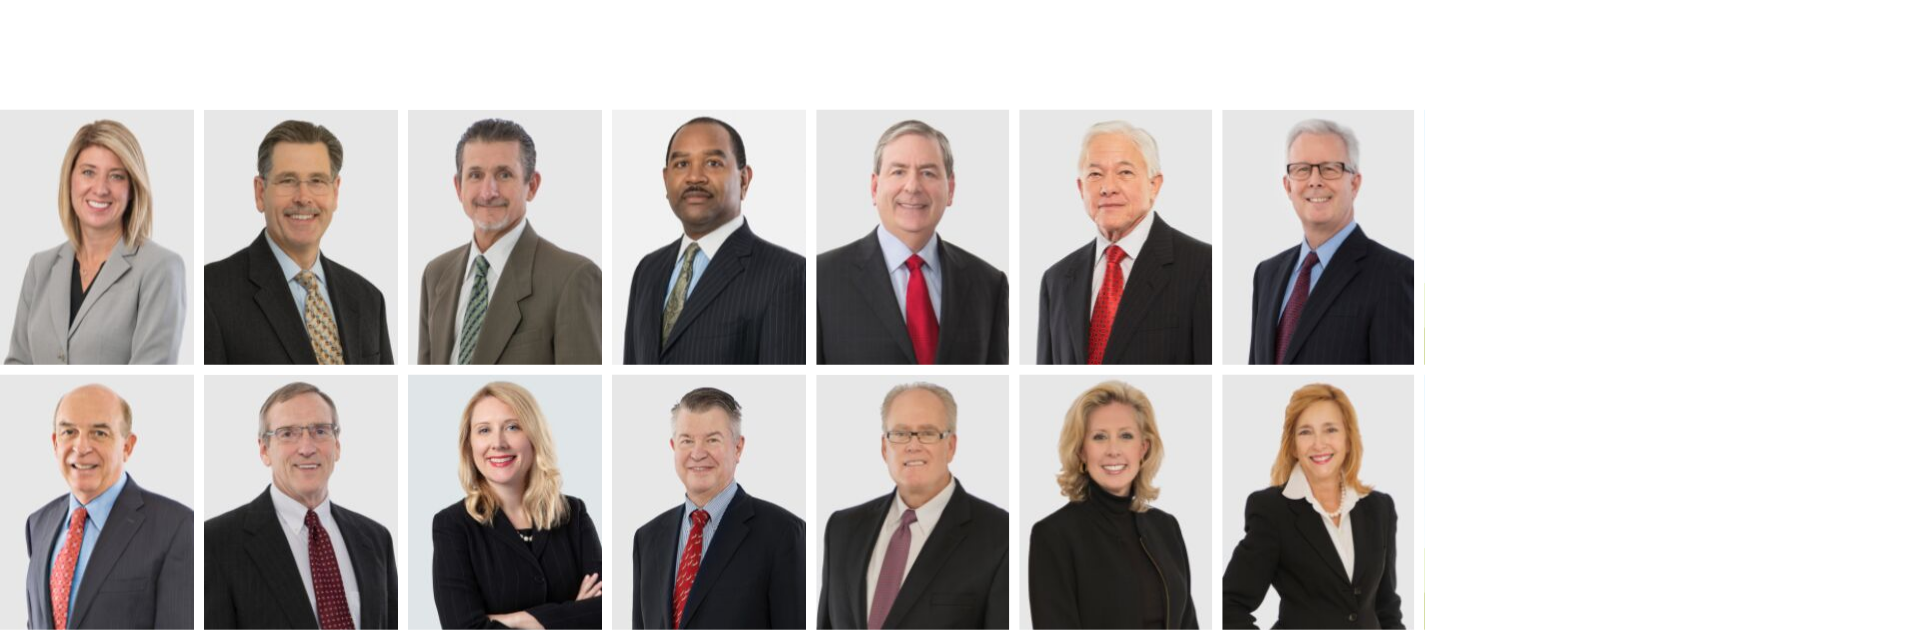 14 Coats Rose Lawyers Named to 2020 Best Lawyers in America© List Published by Woodward White Inc.